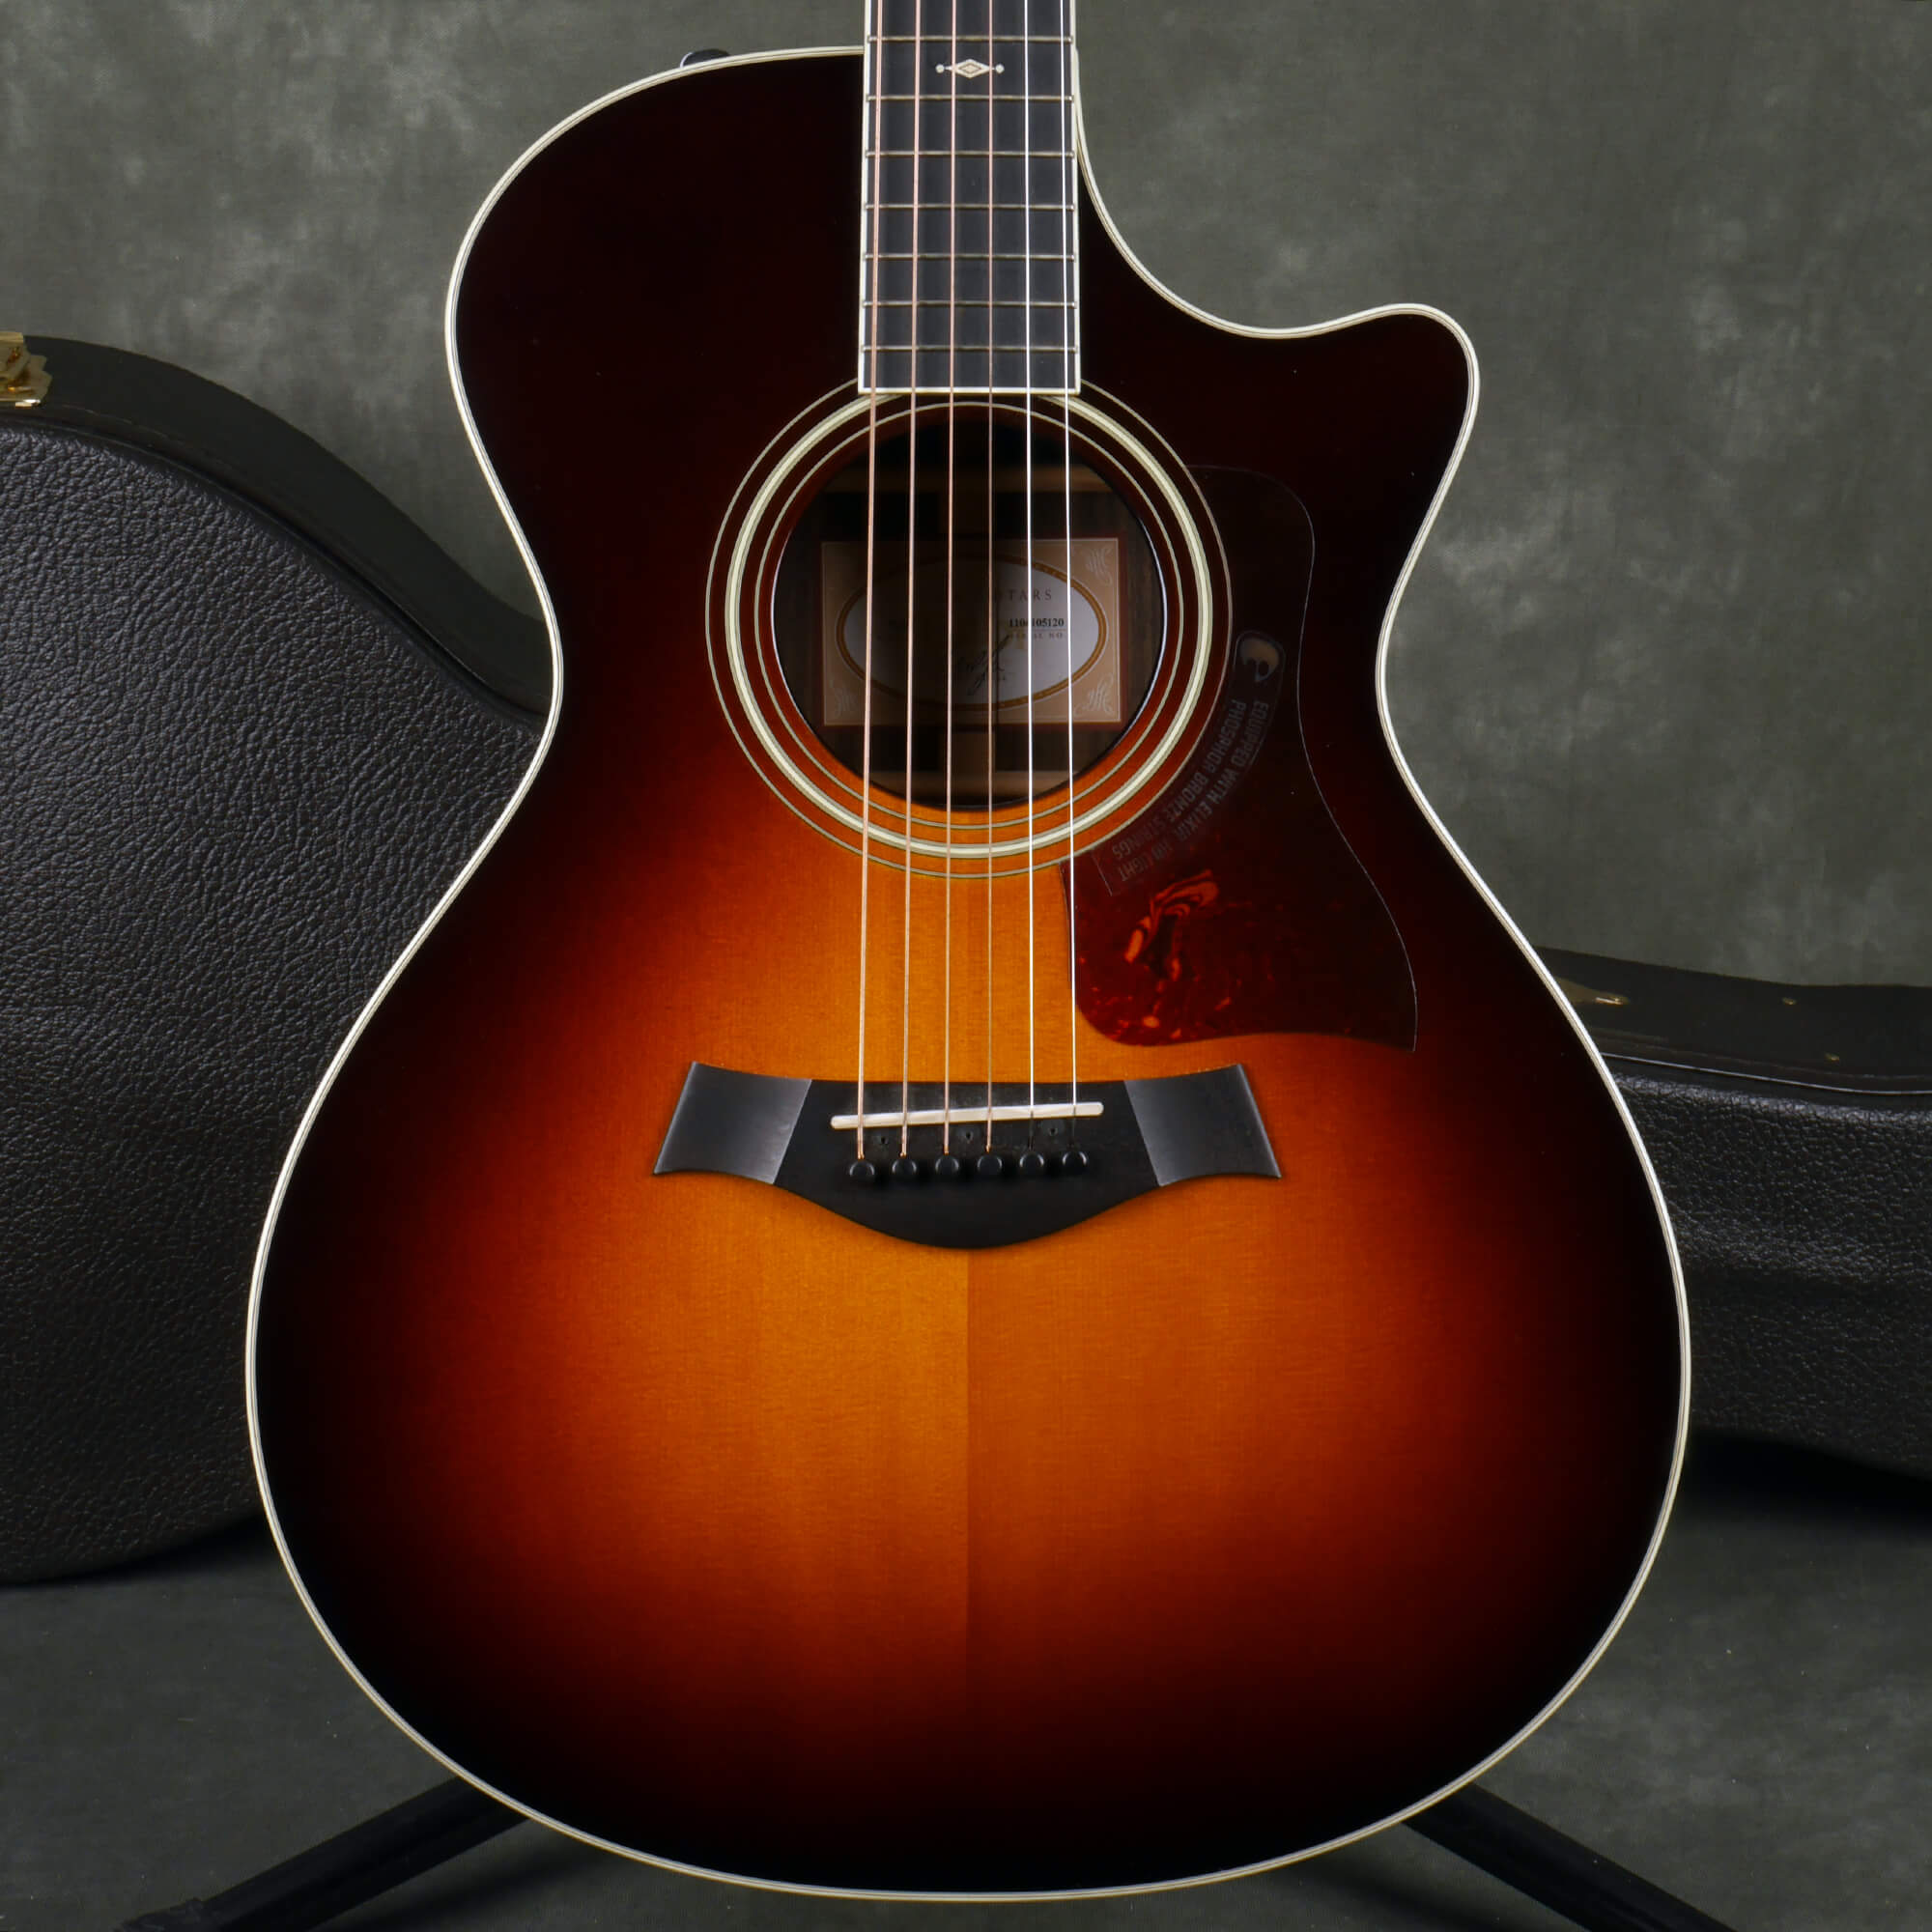 Taylor 712ce ES2 Electro-Acoustic Guitar - Sunburst w/Hard Case - 2nd Hand